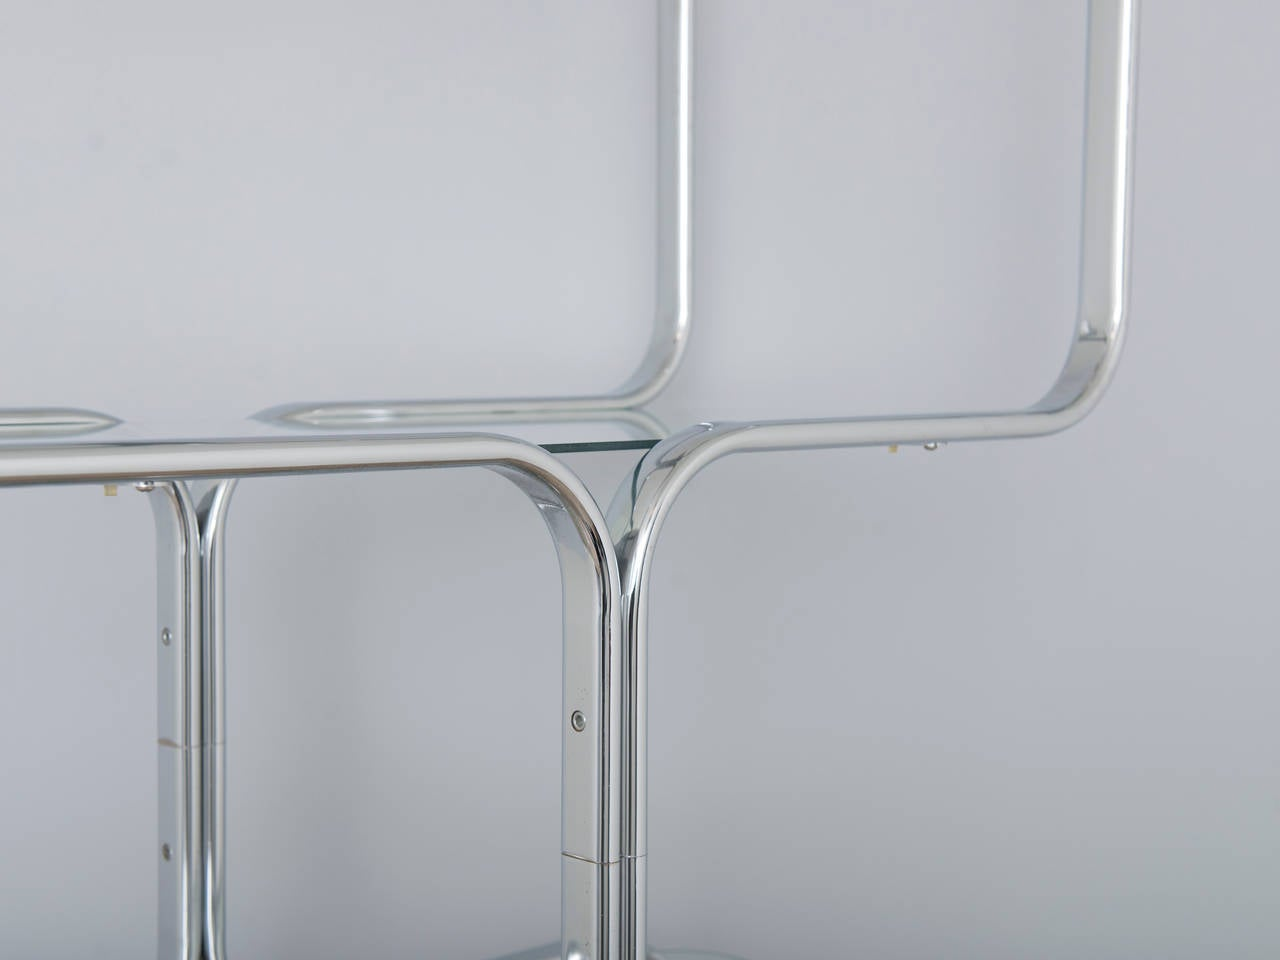 Mid-Century Modern Italian 1970s Chrome and Glass Etagere by Tricom For Sale